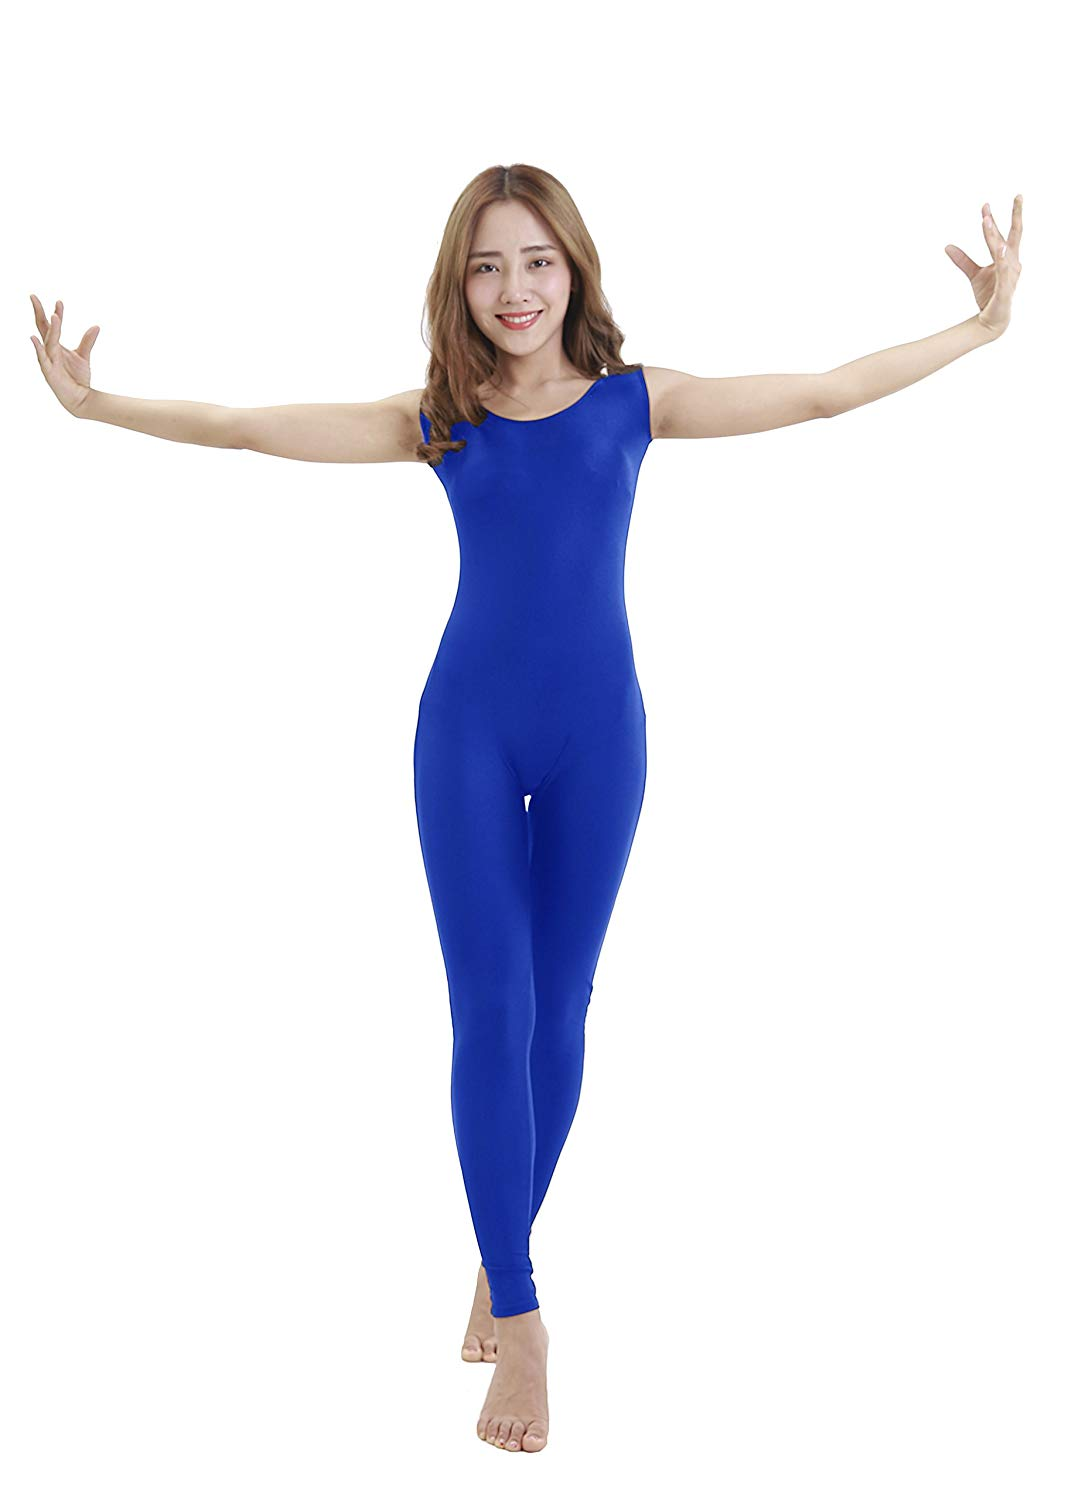 43a795adc8 Get Quotations · Felicirisa Womens Scoop Neck Sleeveless Lycra Unitard  Bodysuit Jumpsuit